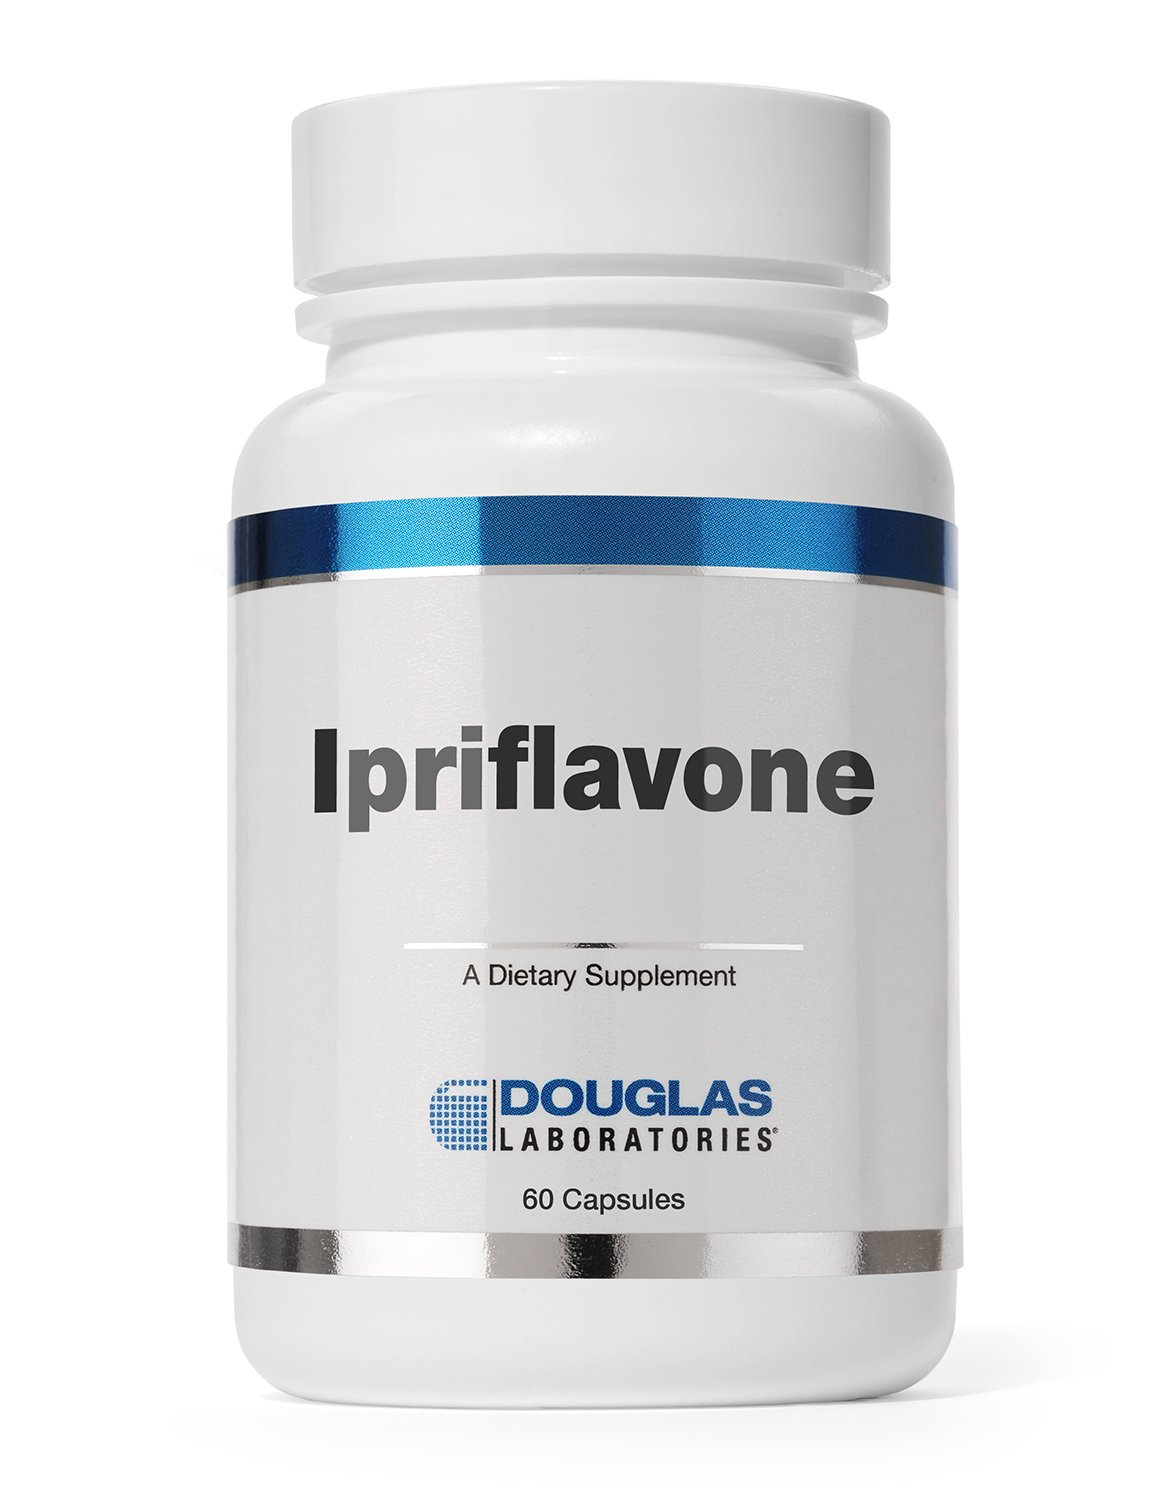 Douglas Laboratories - Ipriflavone (300 mg.) - Flavonoids for Support of Healthy Bone Structure* - 60 Capsules